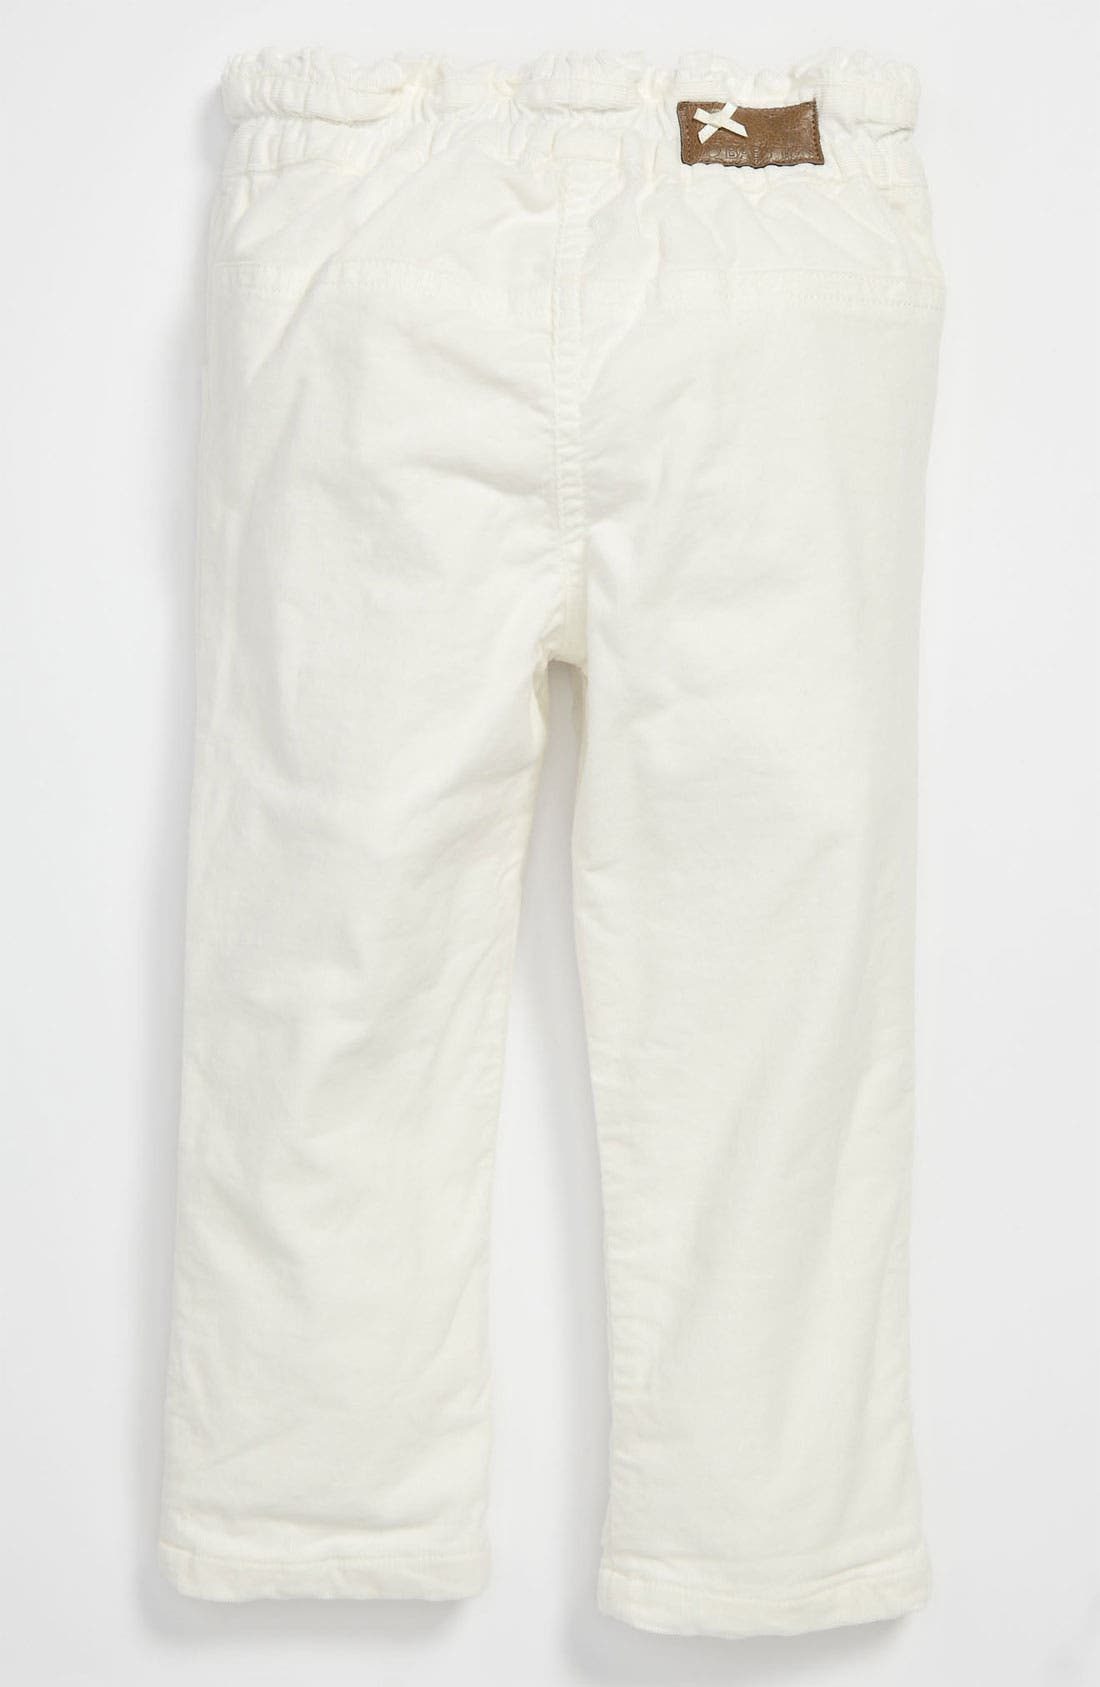 Main Image - United Colors of Benetton Kids Corduroy Pants (Infant)